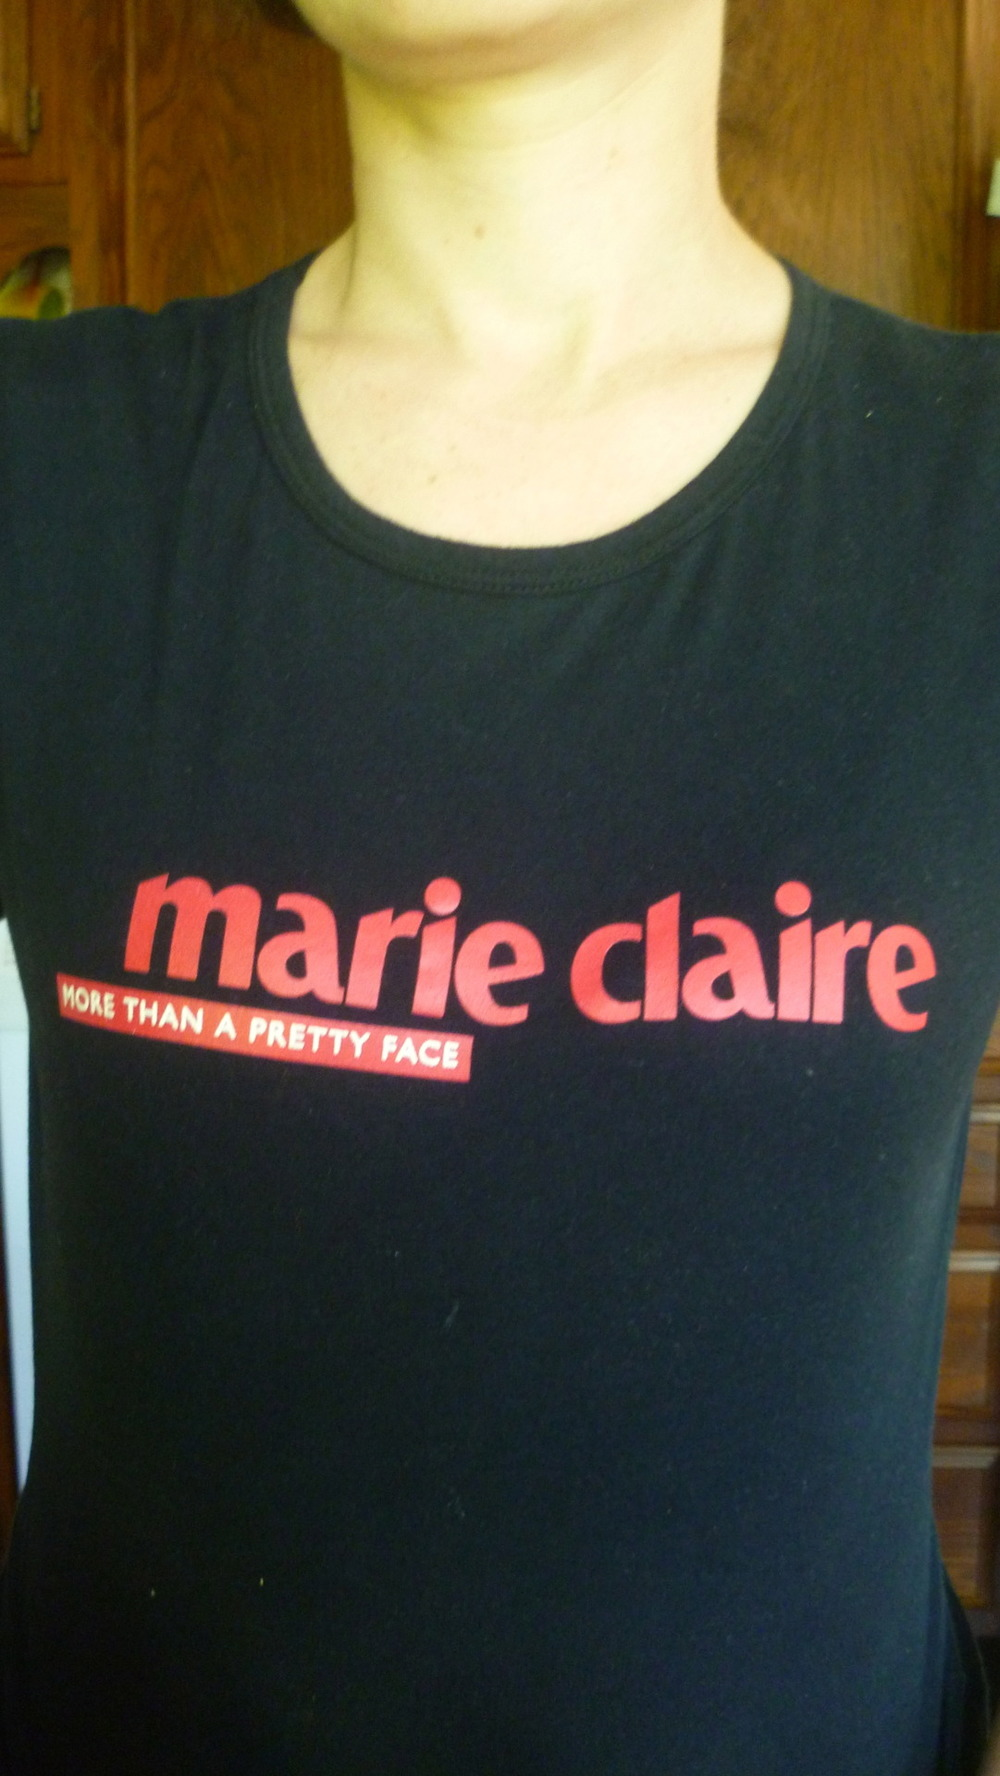 My cousin had this shirt on and I had to snap a photo of it. Why? Cause Marie Claire is taking over the world!